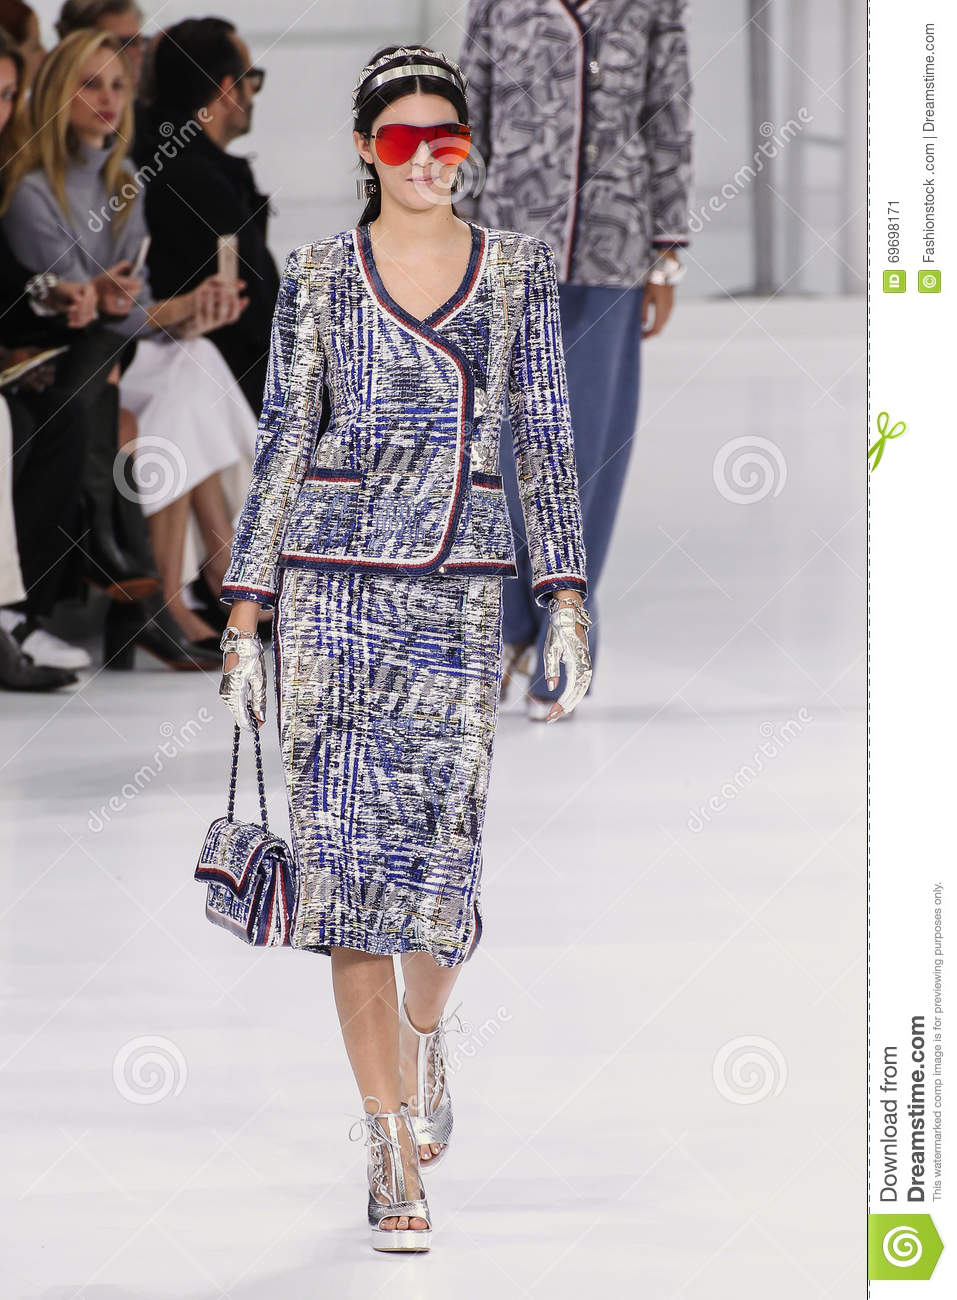 972fa0b3ba63 Kendall Jenner Walks The Runway During The Chanel Show Editorial ...